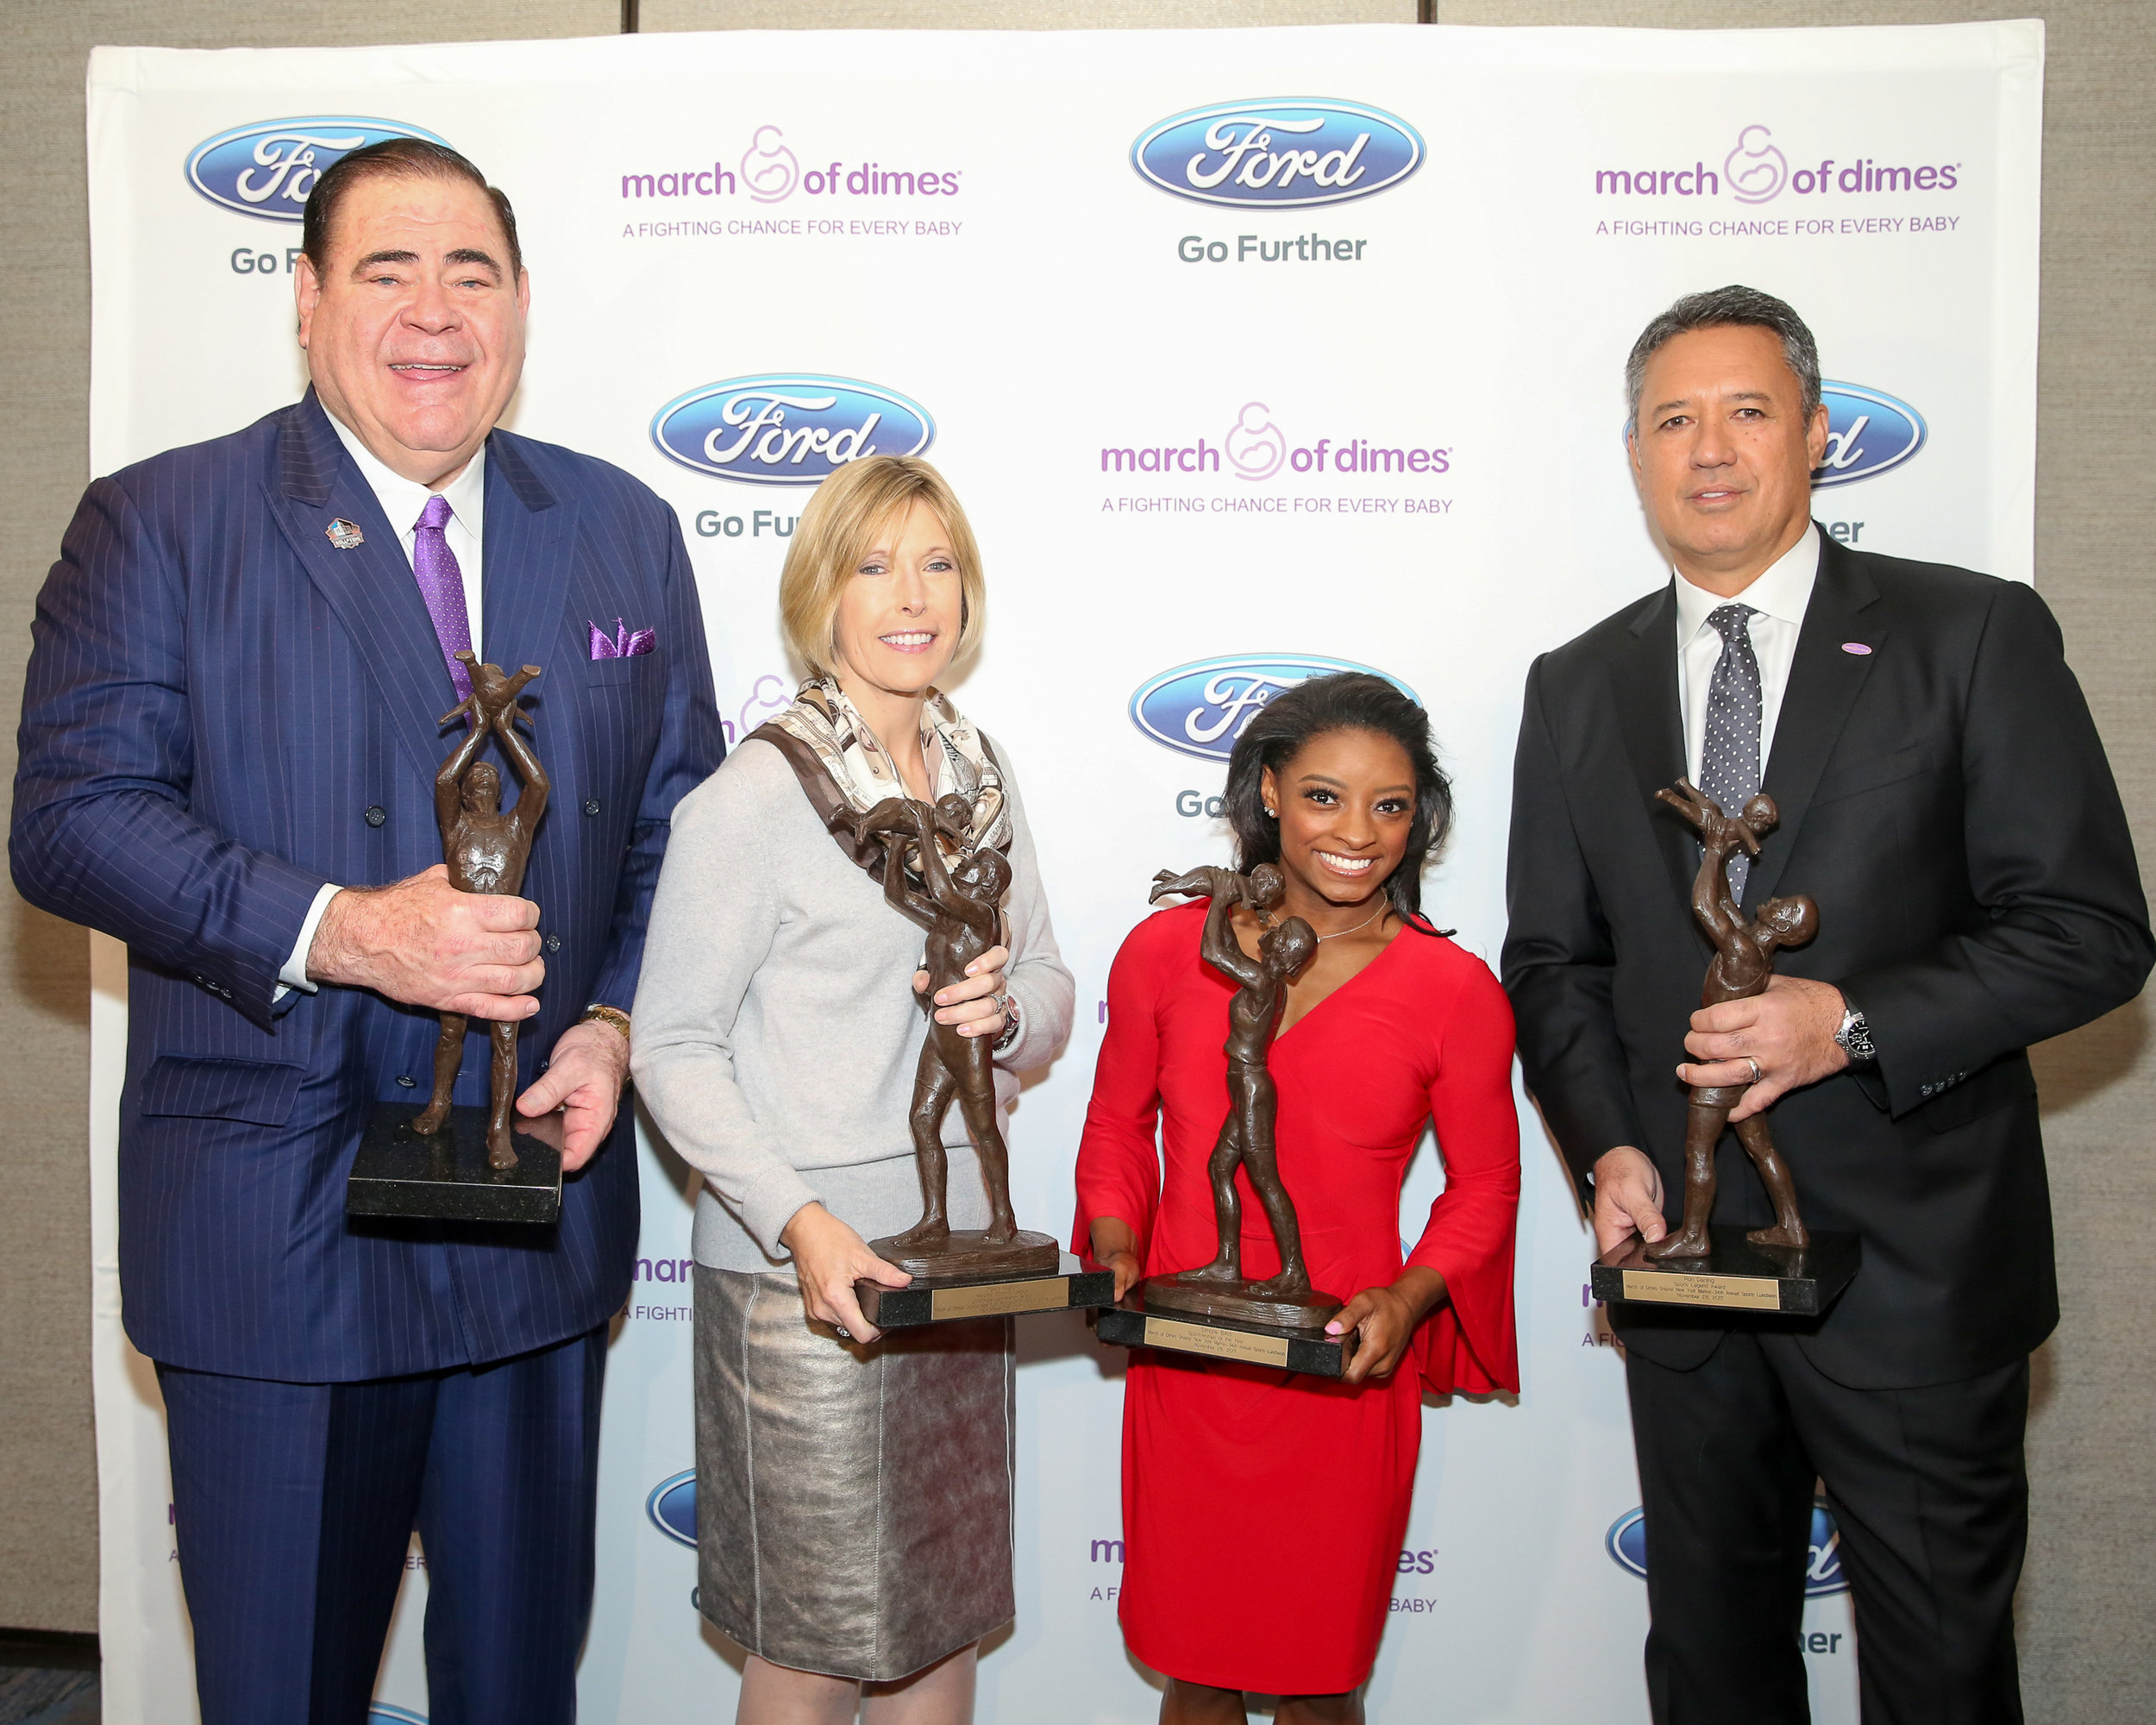 The March of Dimes Sports Luncheon raised 1.2 million November 28, 2017 at the Midtown New York Hilton, promoting healthy babies. Mellon bronzes honored Ron Darling, sports broadcaster and former NY Mets star pitcher, multiple Olympic Gold medal winning gymnast Simon Biles, Pro Football Hall of Fame President David Baker, and NFL Chief Marketing Officer Dawn Hudson. Photos © Hechler Photography